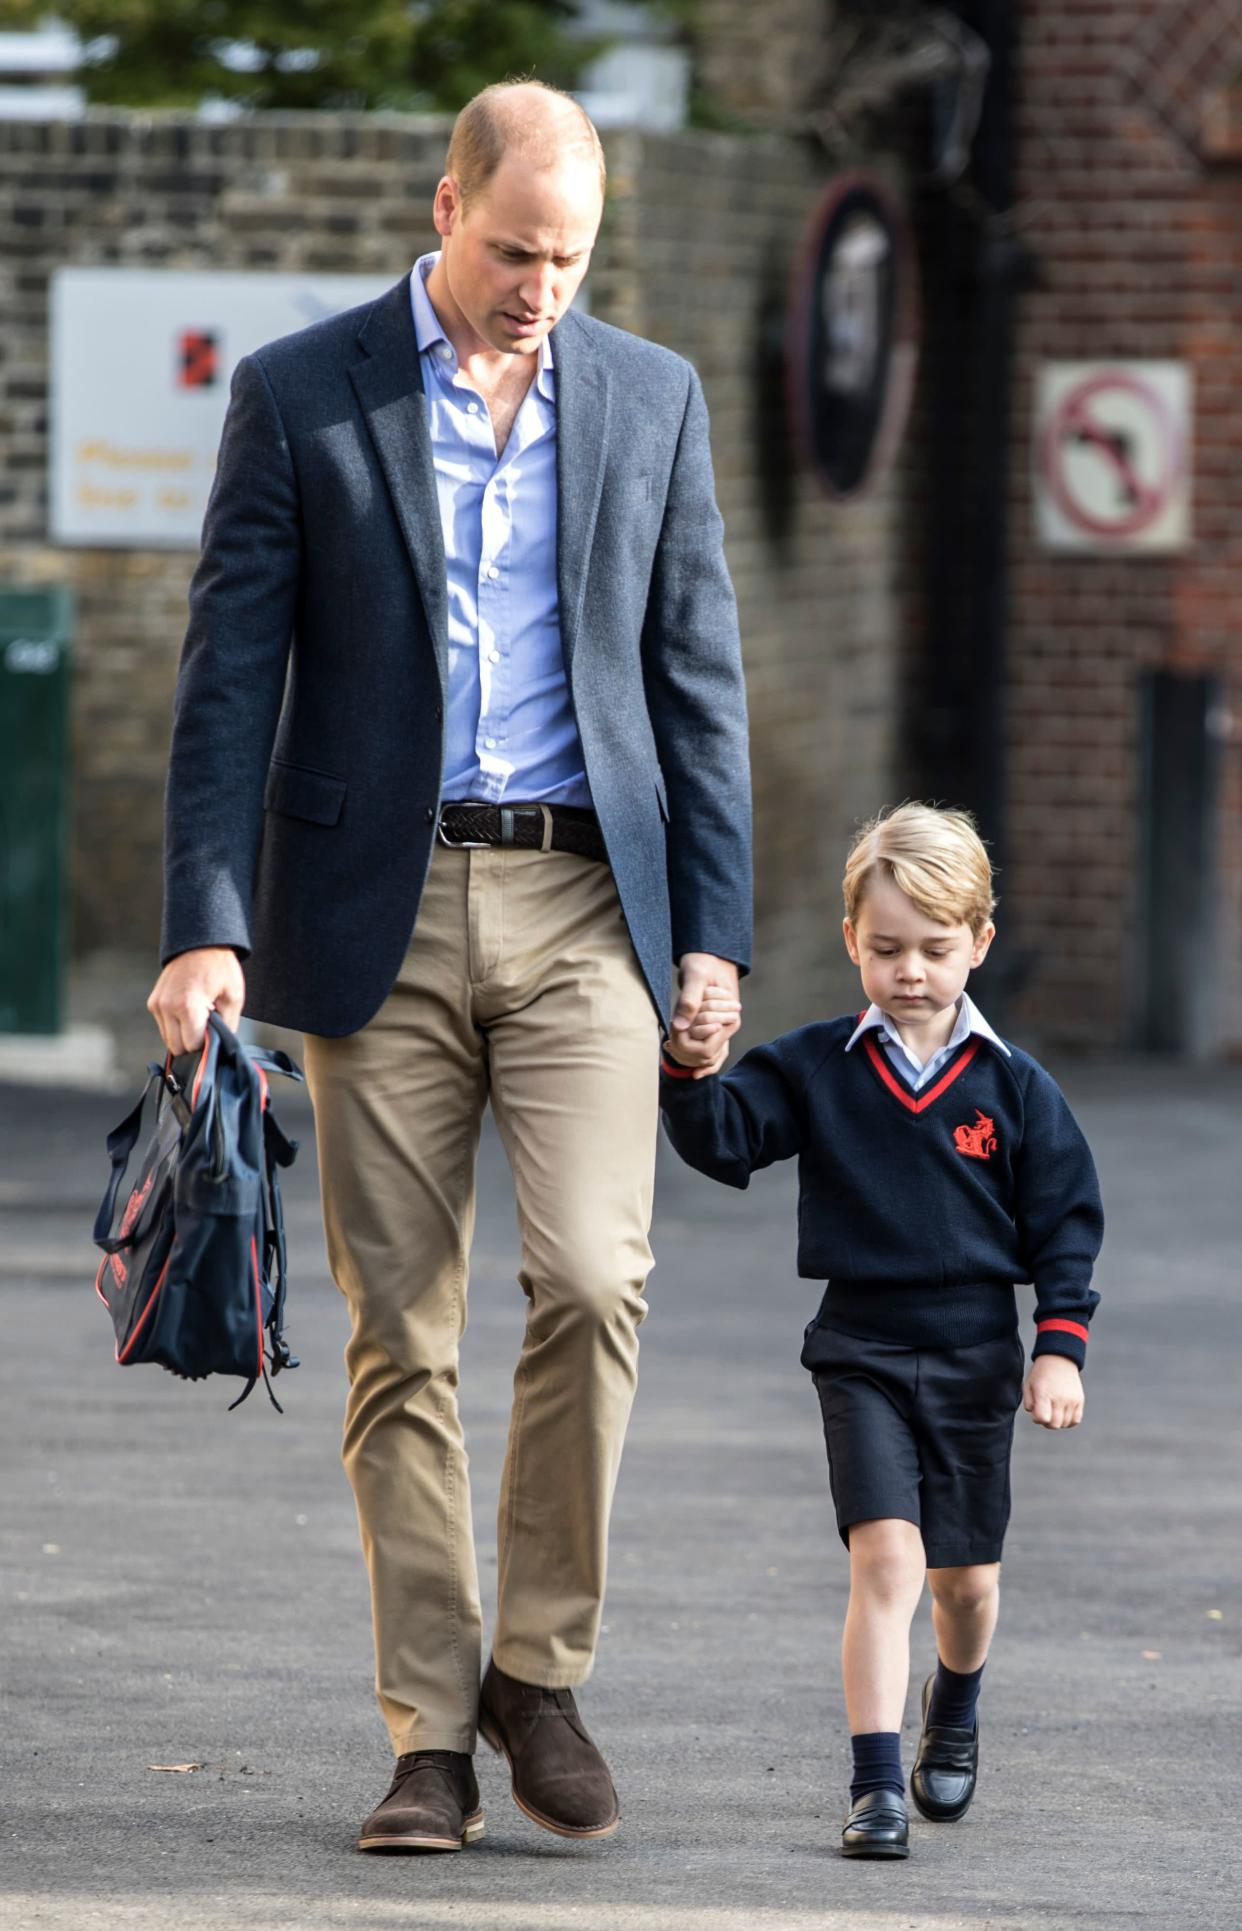 TOPSHOT - Britain's Prince George accompanied by Britain's Prince William (L), Duke of Cambridge arrives for his first day of school at Thomas's school in Battersea, southwest London on September 7, 2017. / AFP PHOTO / POOL / RICHARD POHLE        (Photo credit should read RICHARD POHLE/AFP via Getty Images)